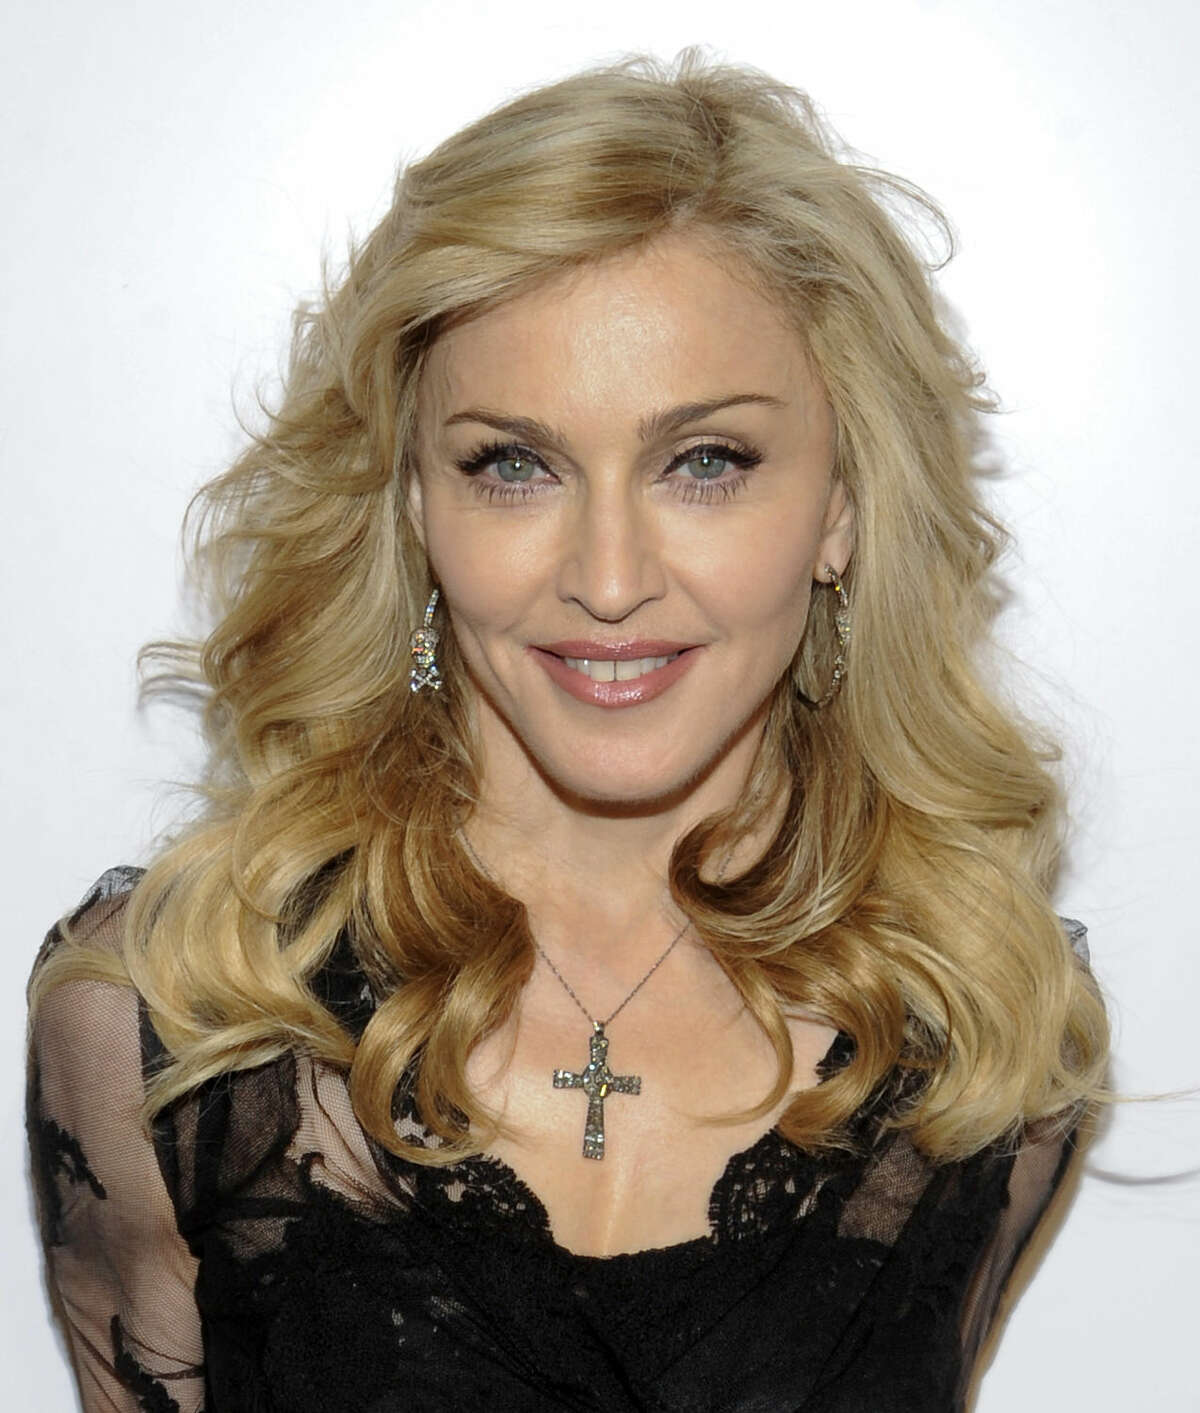 """This file photo shows singer Madonna arriving at Macy's Herald Square to launch her new fragrance in New York. At her concert Thursday in Philadelphia, where Francis is scheduled to make the last stop of his U.S. tour this weekend, a tongue-in-cheek Madonna dedicated a section of her show to him. She later announced: """"Rules are for fools. That's why I like the new pope. He seems very open-minded."""""""